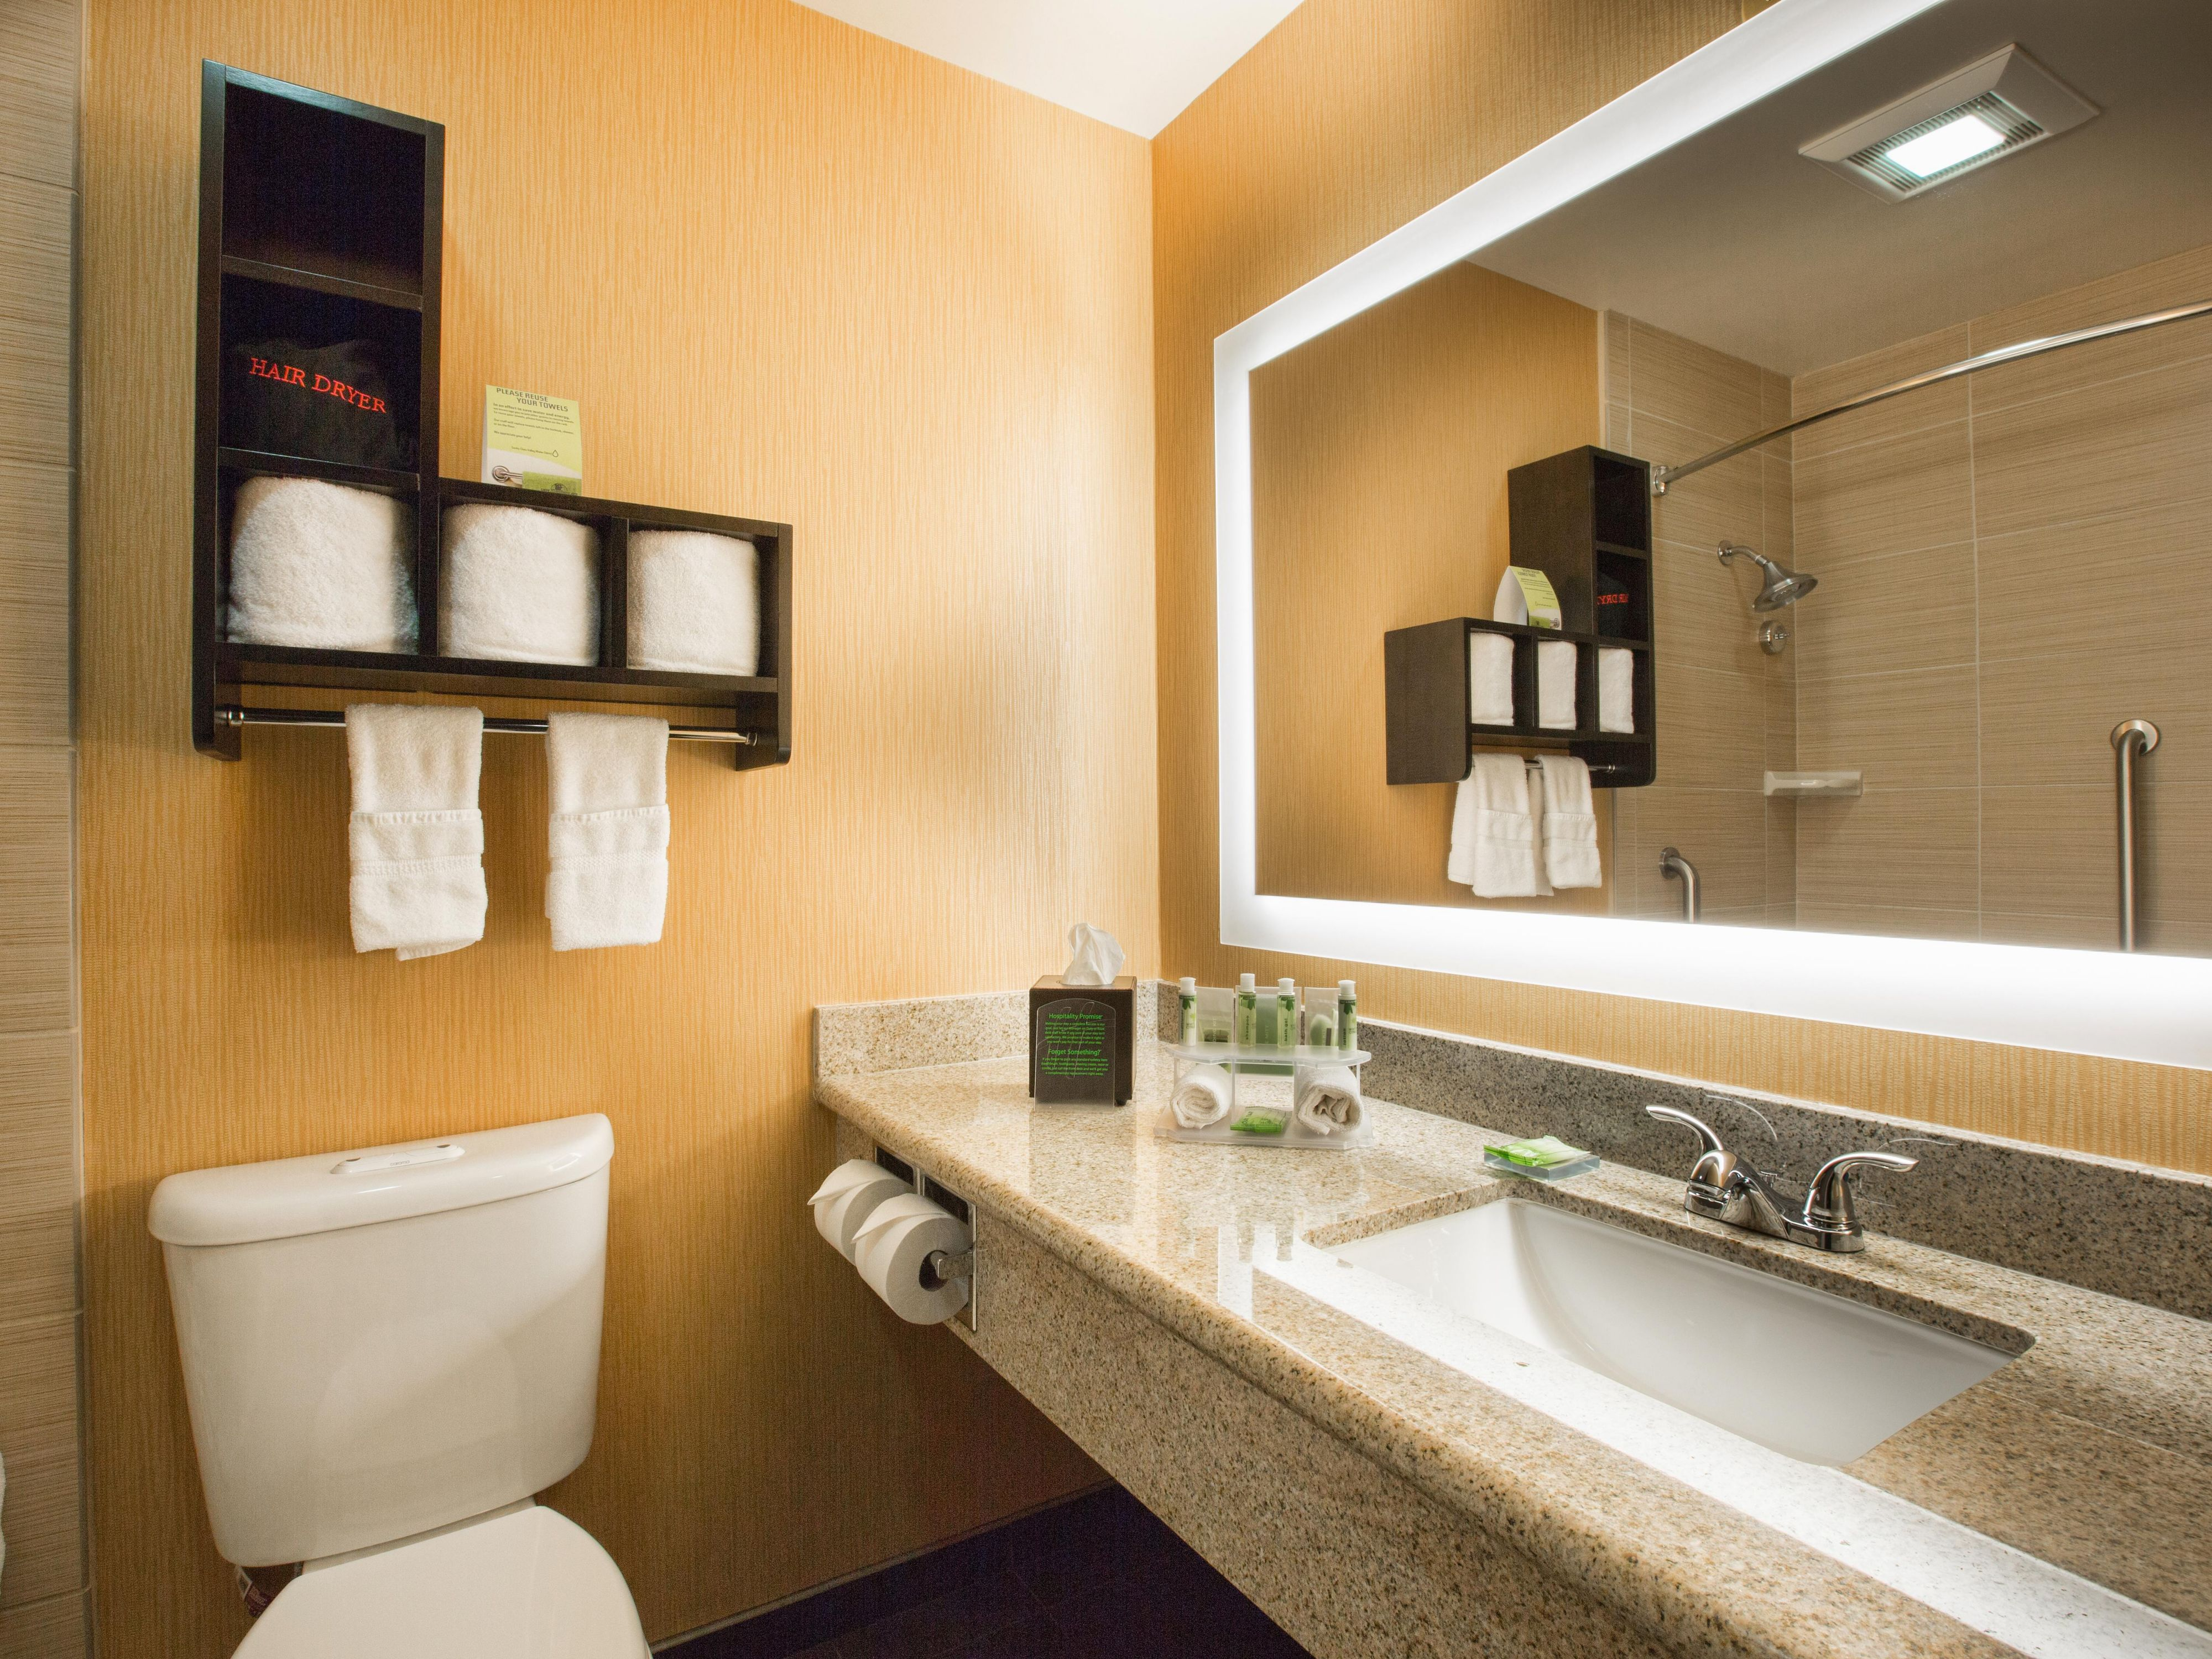 Holiday Inn Express Mtn View / South Palo Alto - Guest Bathroom